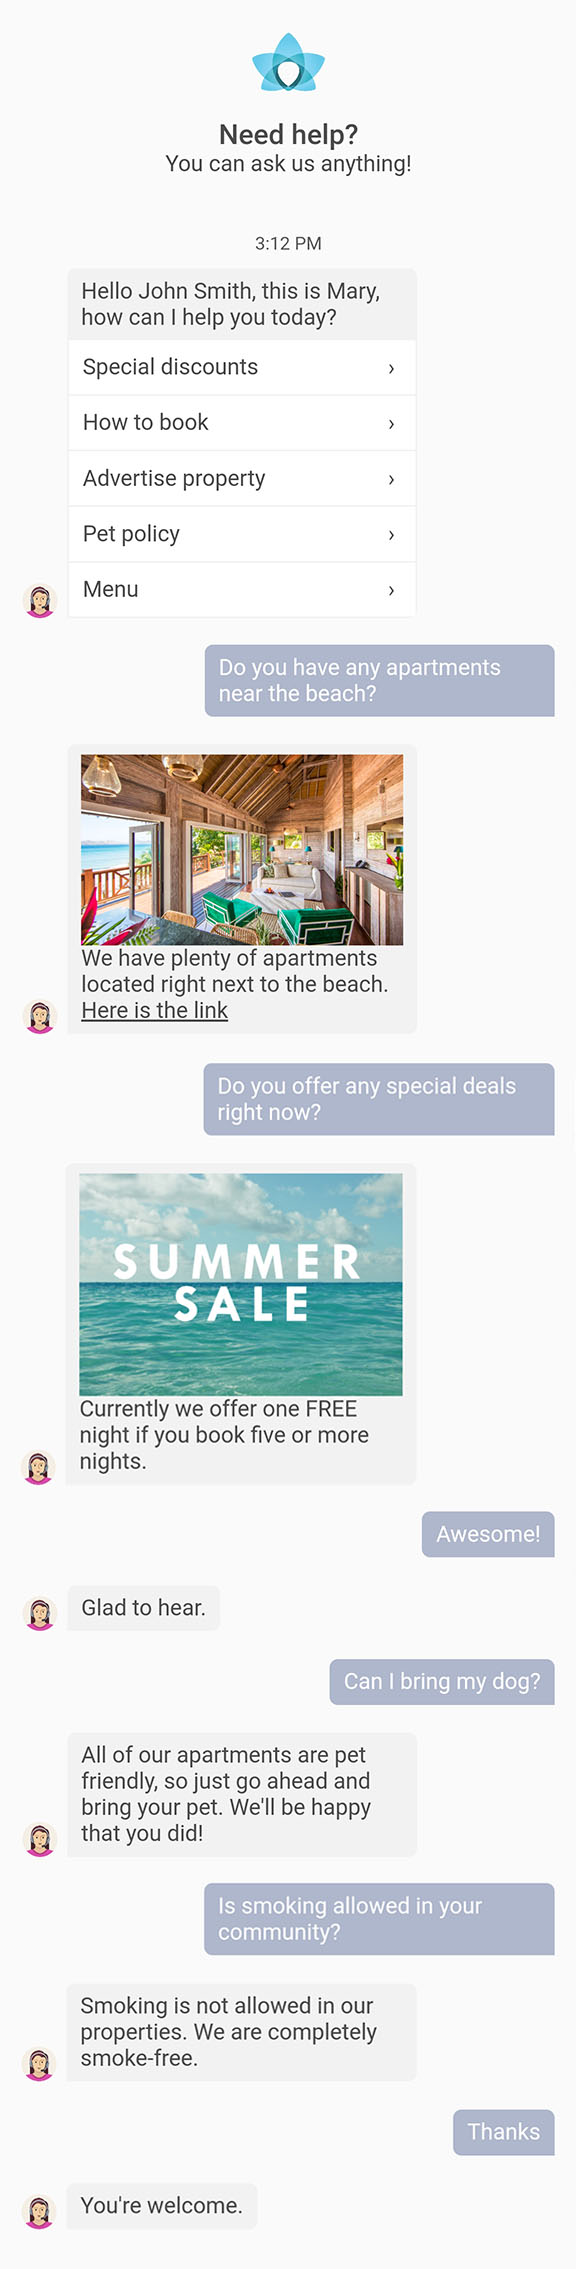 AI powered real estate assistant | Apartment Ocean